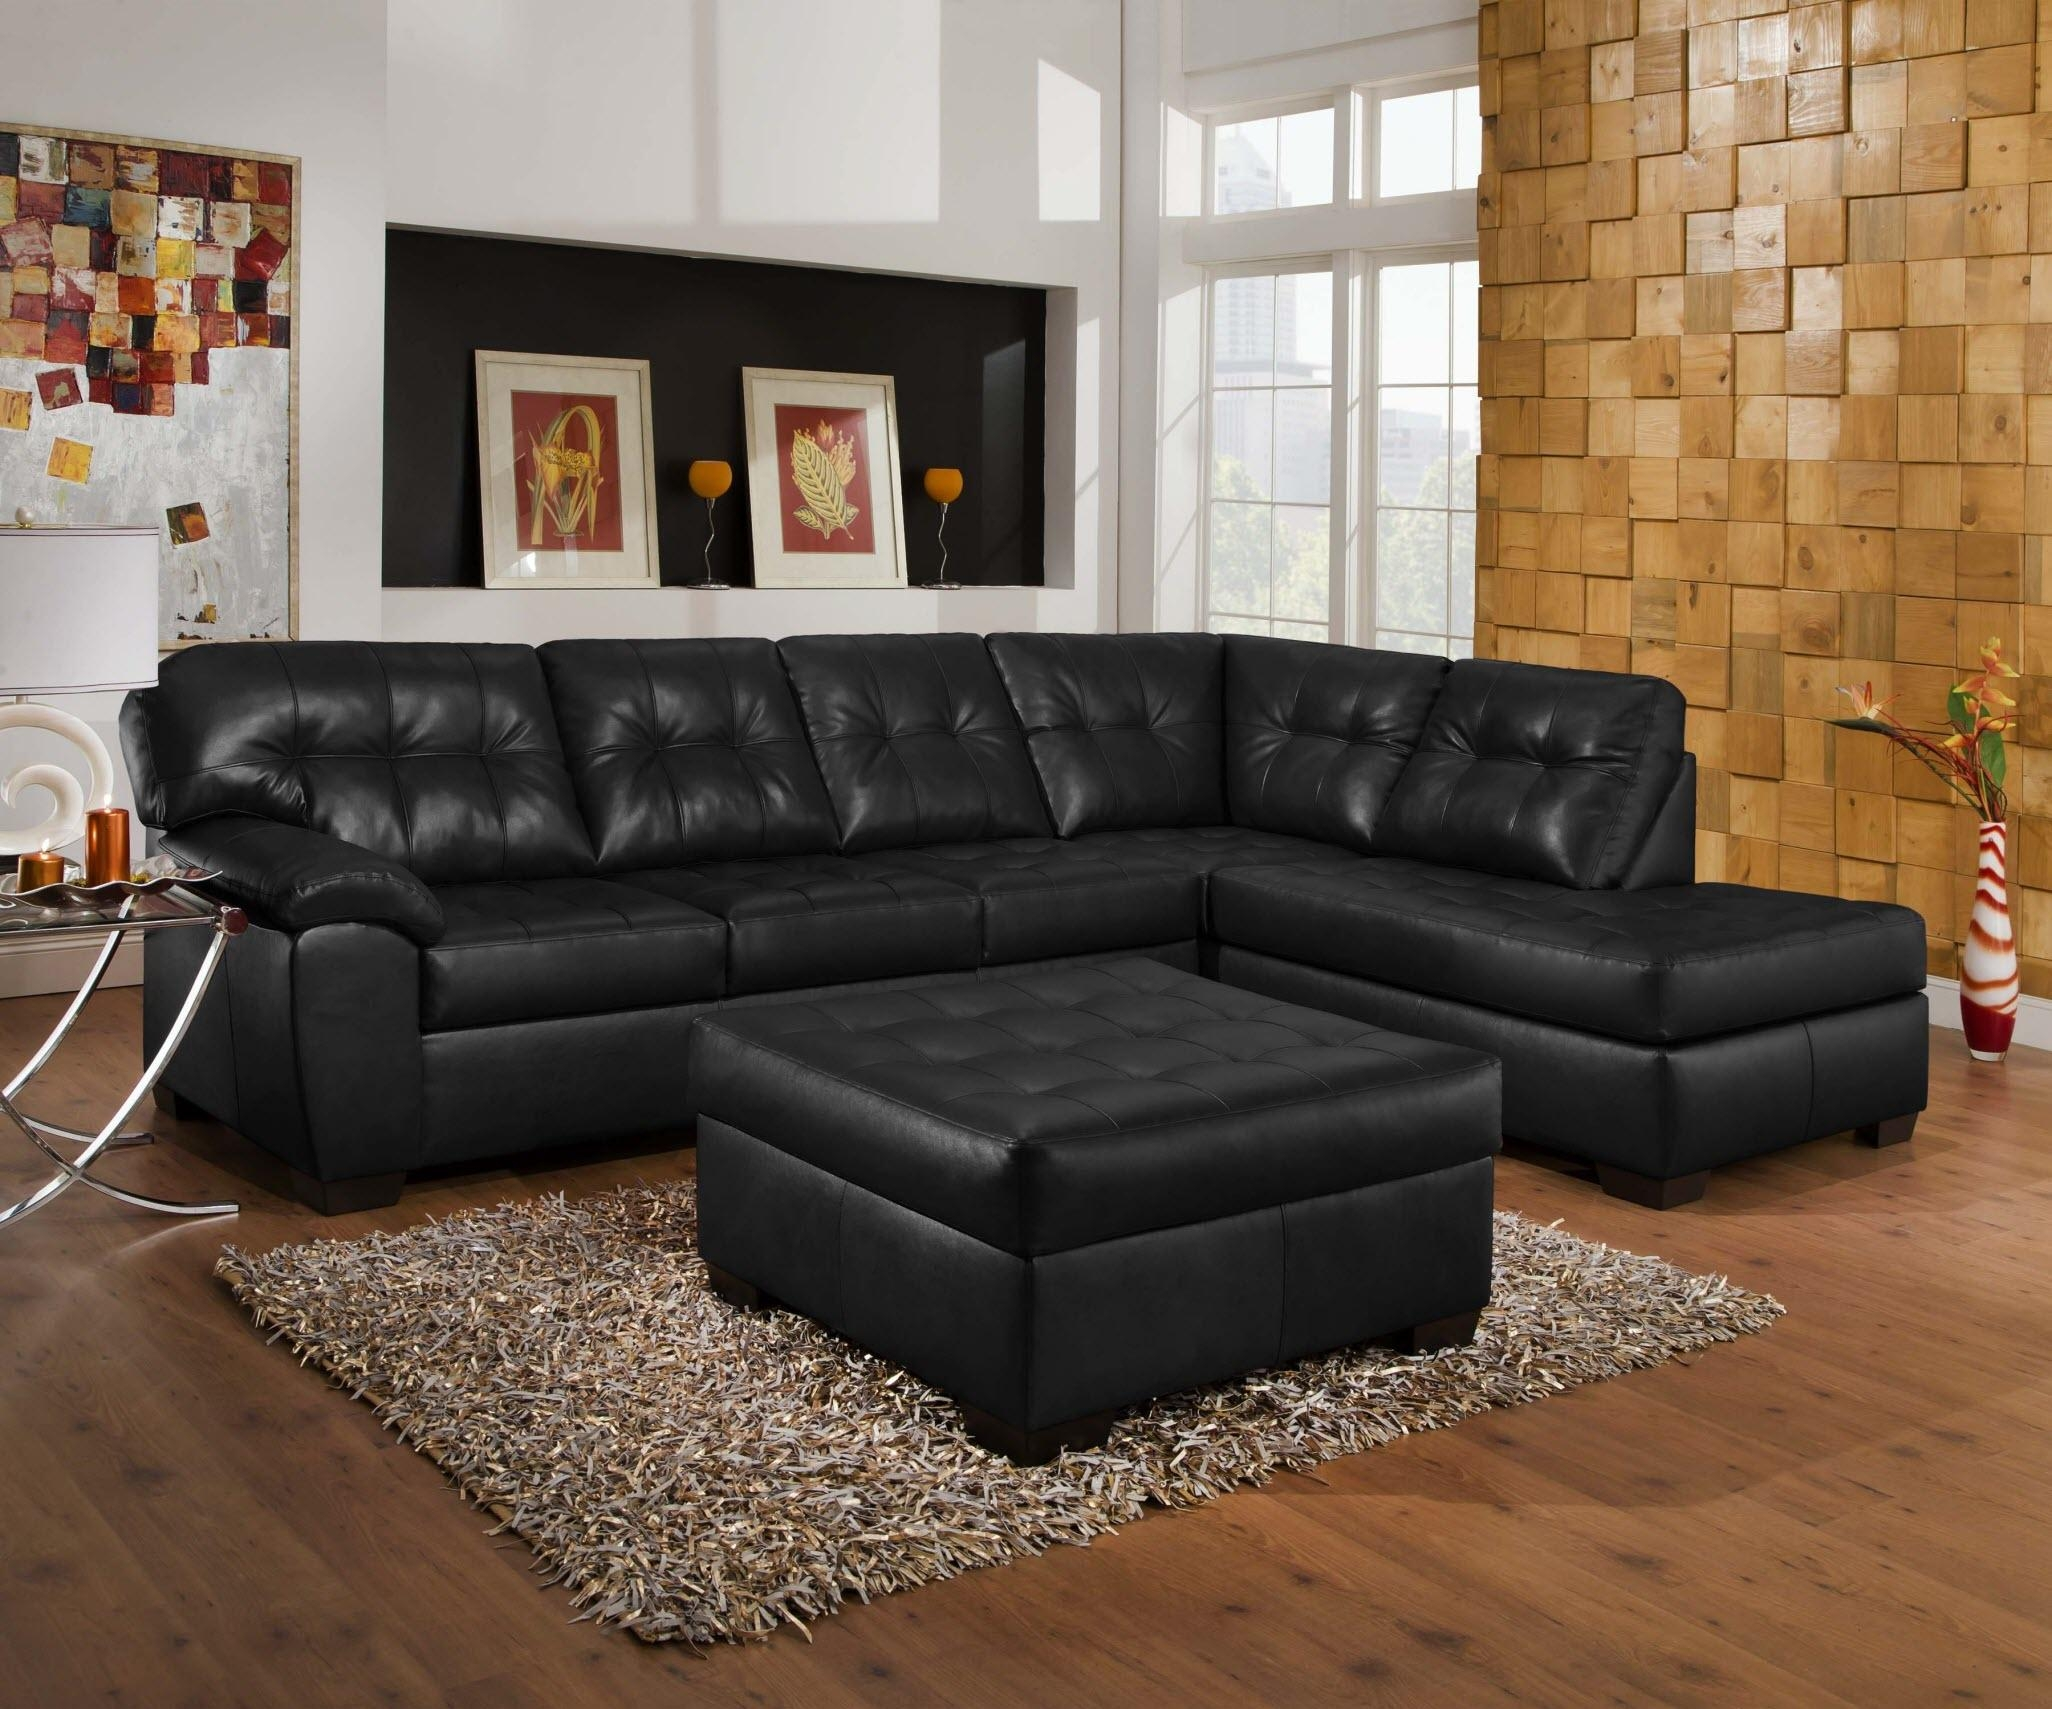 Sealy Leather Sofa 75 With Sealy Leather Sofa | Realestateurl For Sealy Leather Sofas (View 20 of 20)